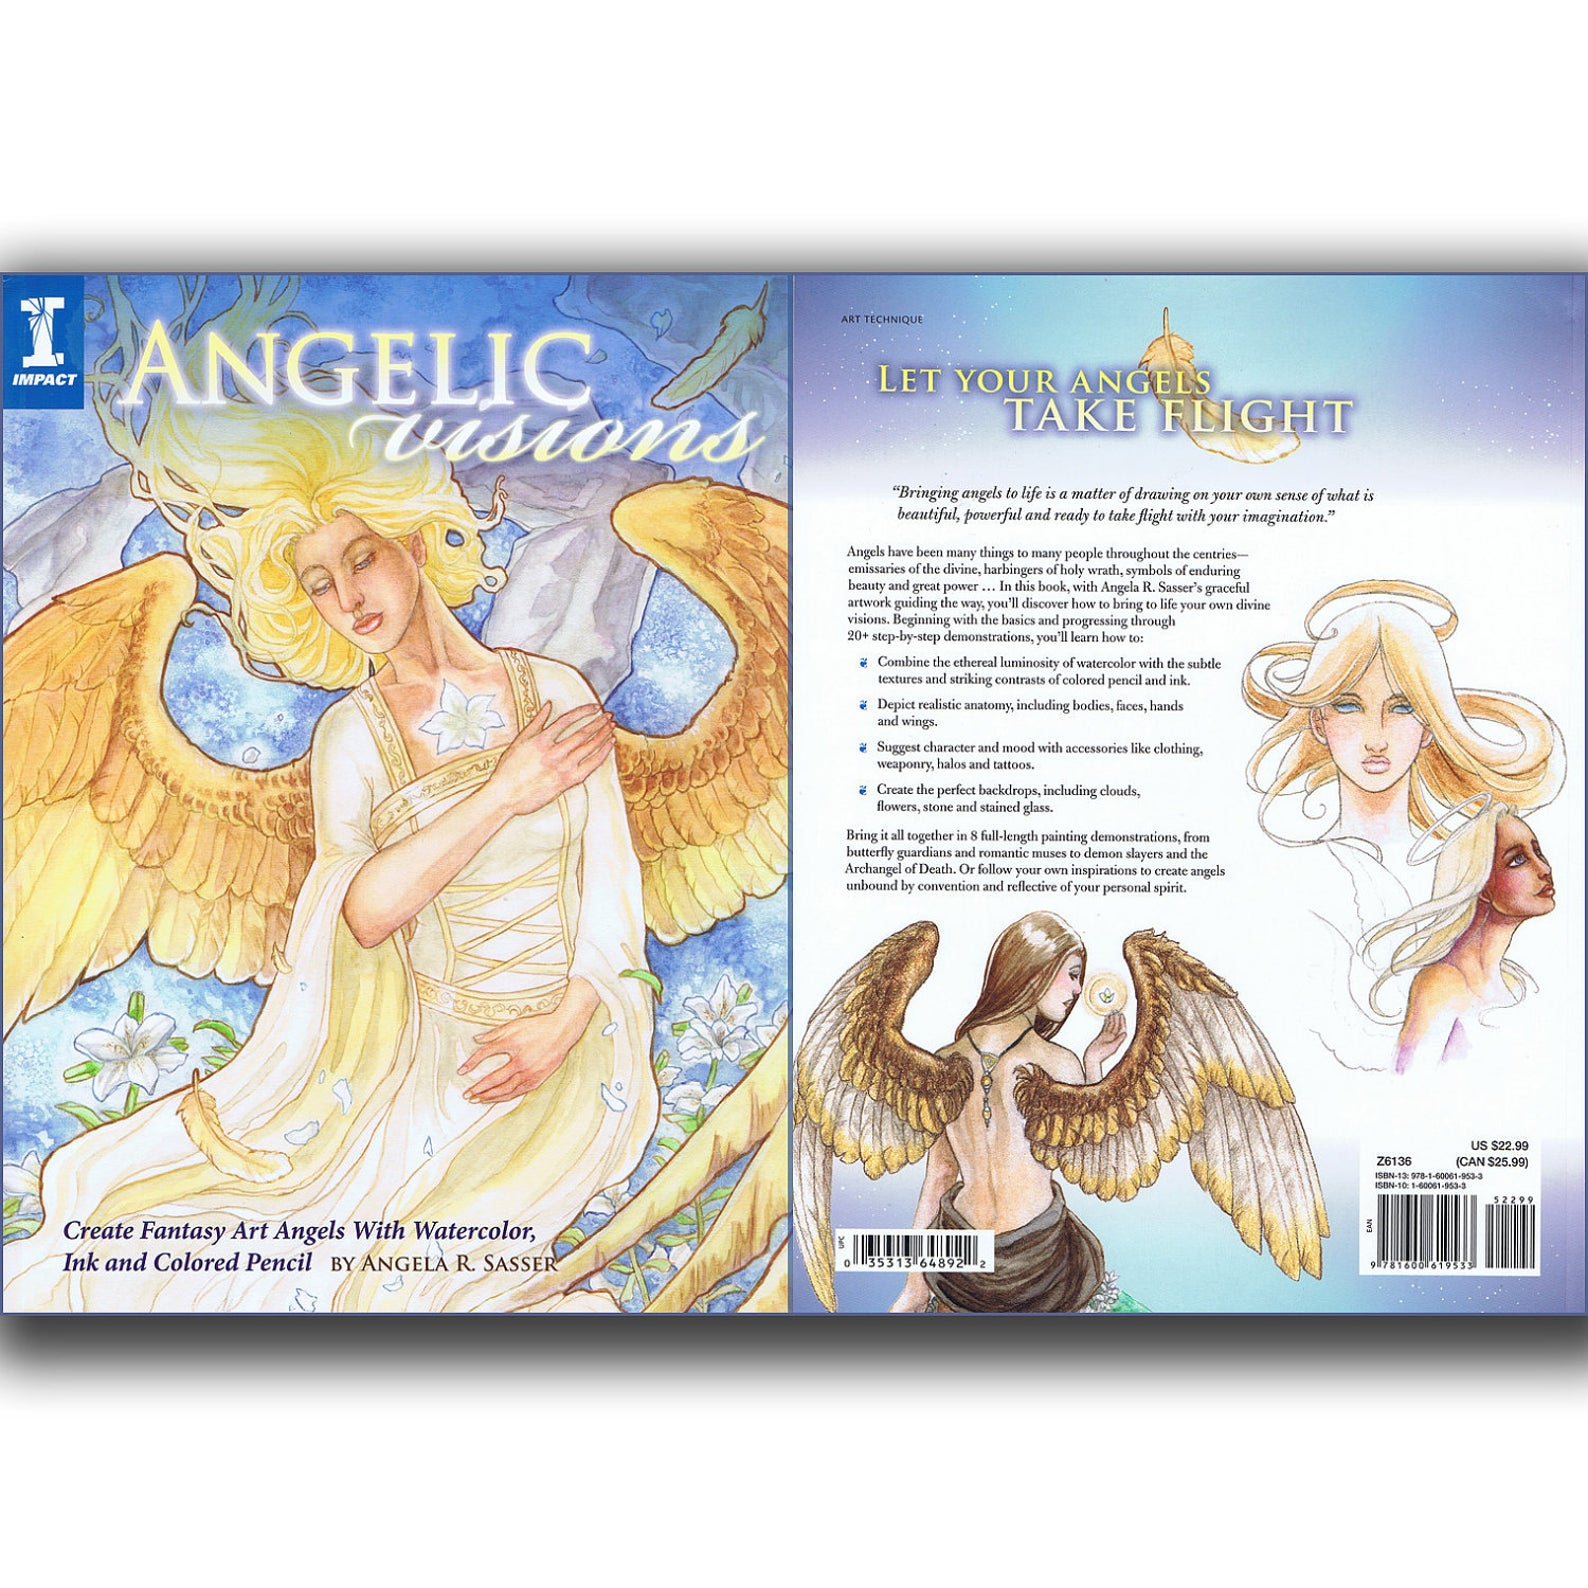 Angelic Visions Book